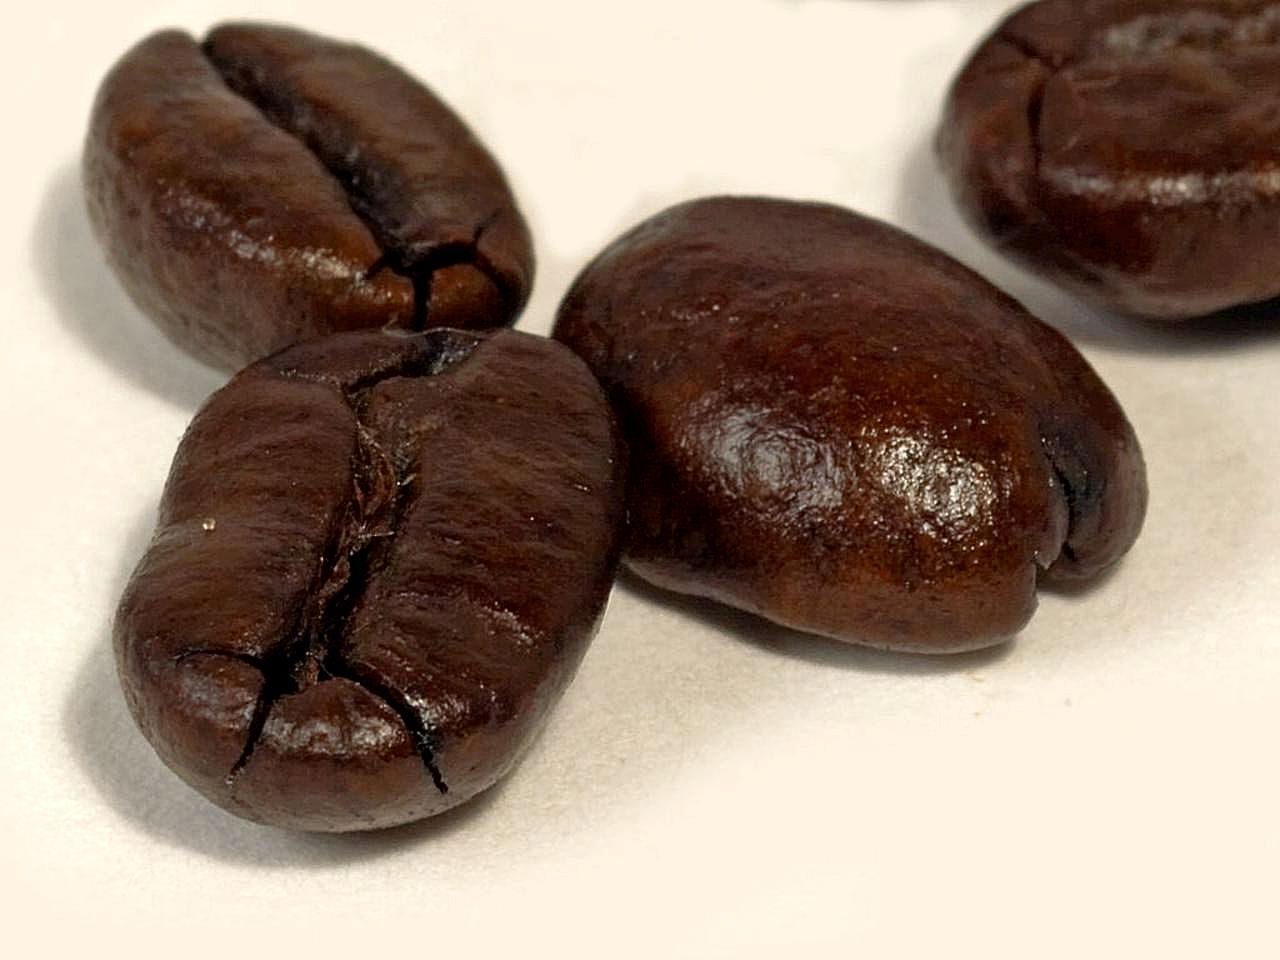 Coffee Beans File:unground coffee beans.jpg